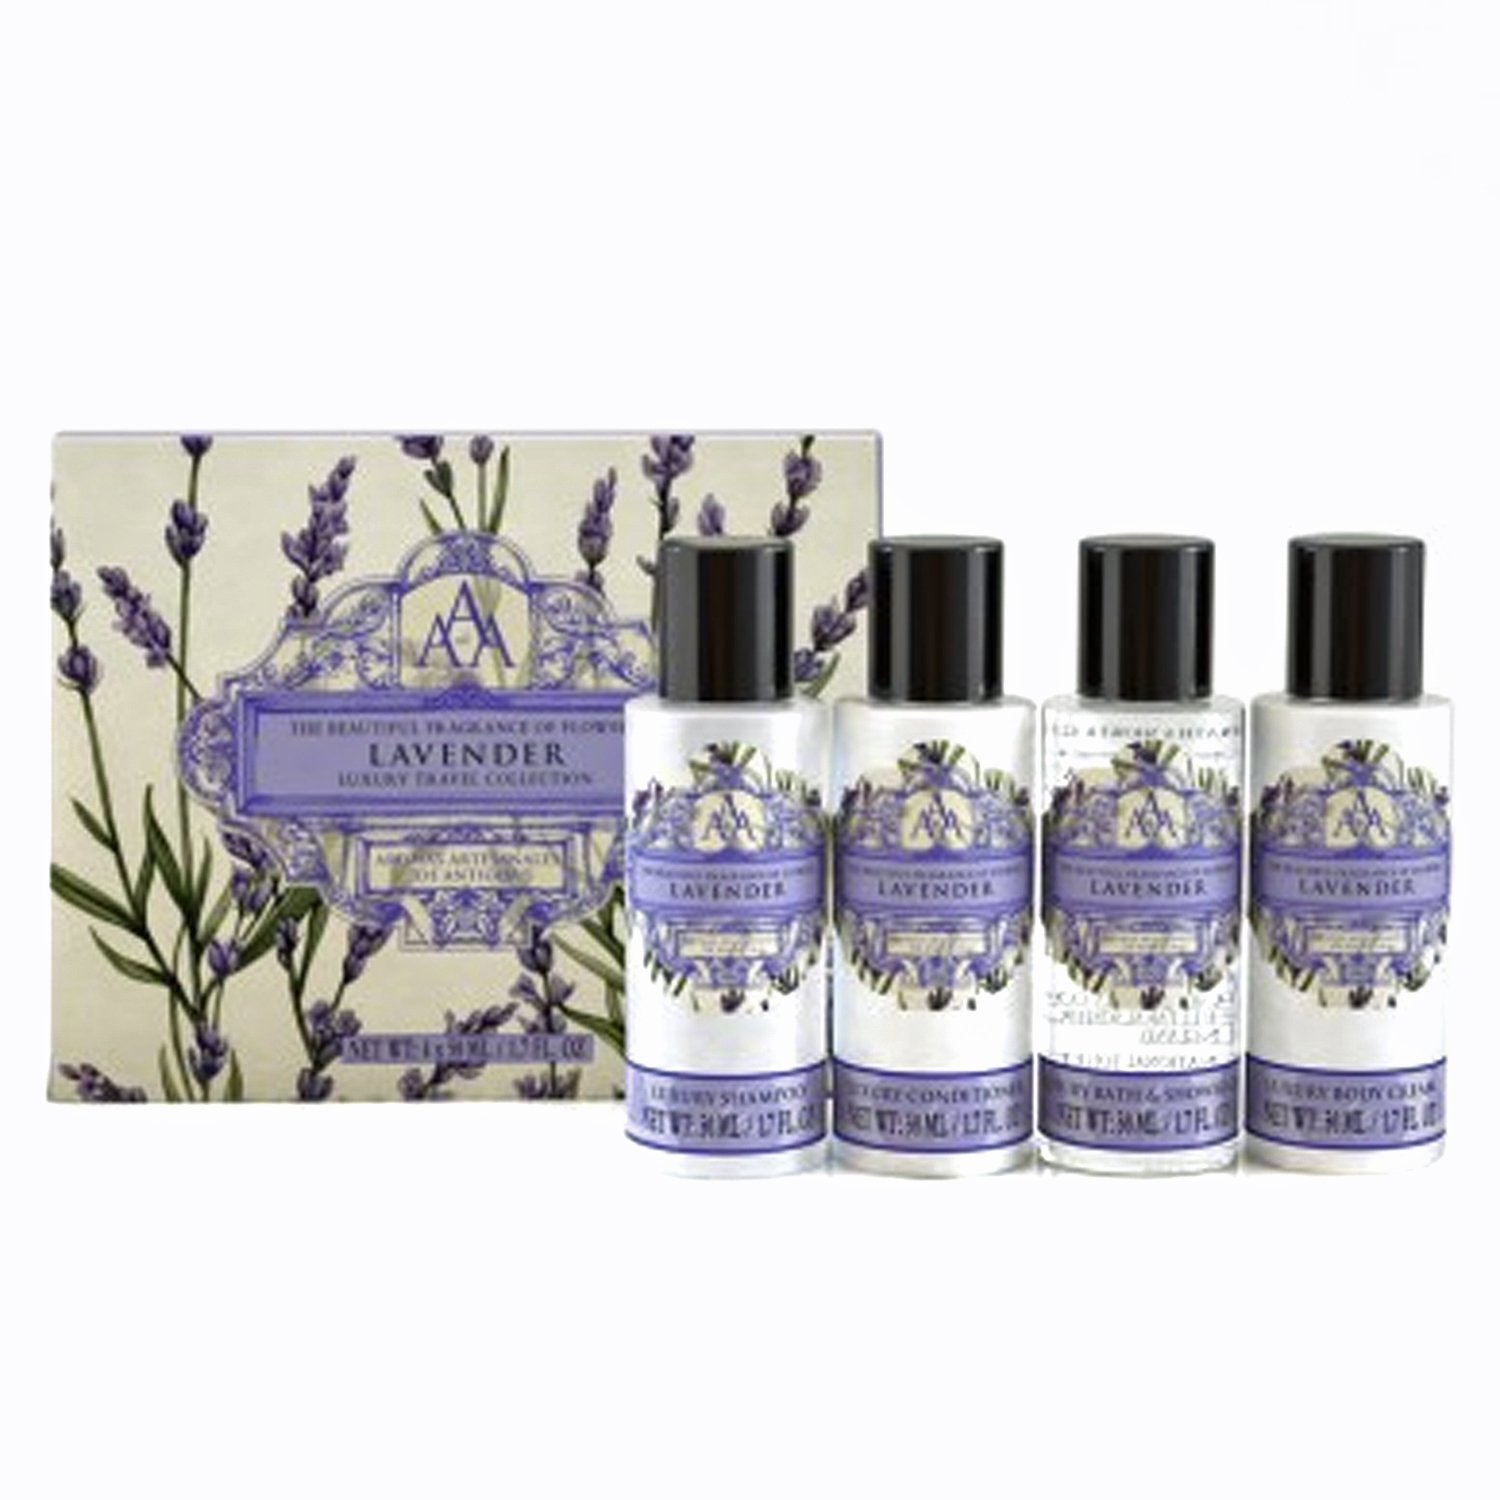 AAA Lavender Luxury Travel Collection by AAA